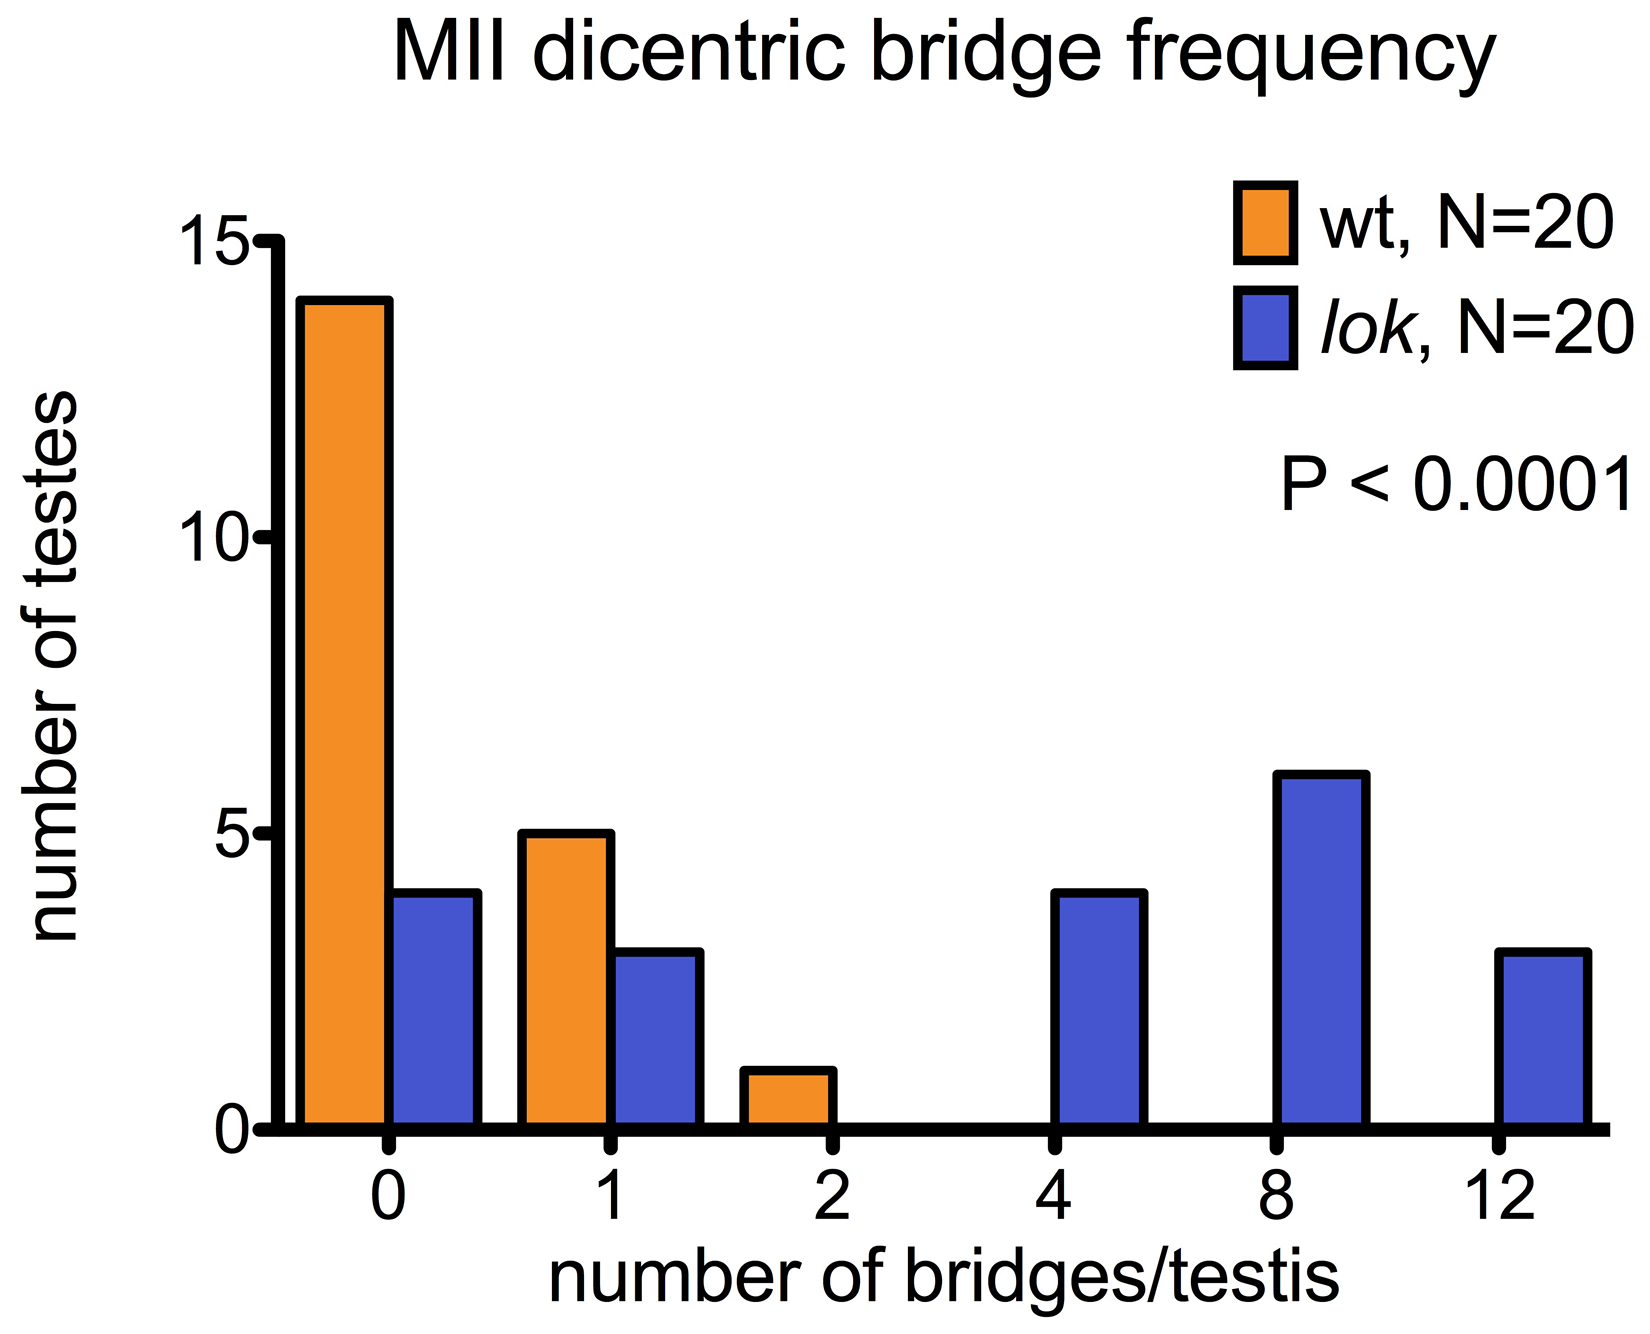 Dicentric bridge frequency in Meiosis II.